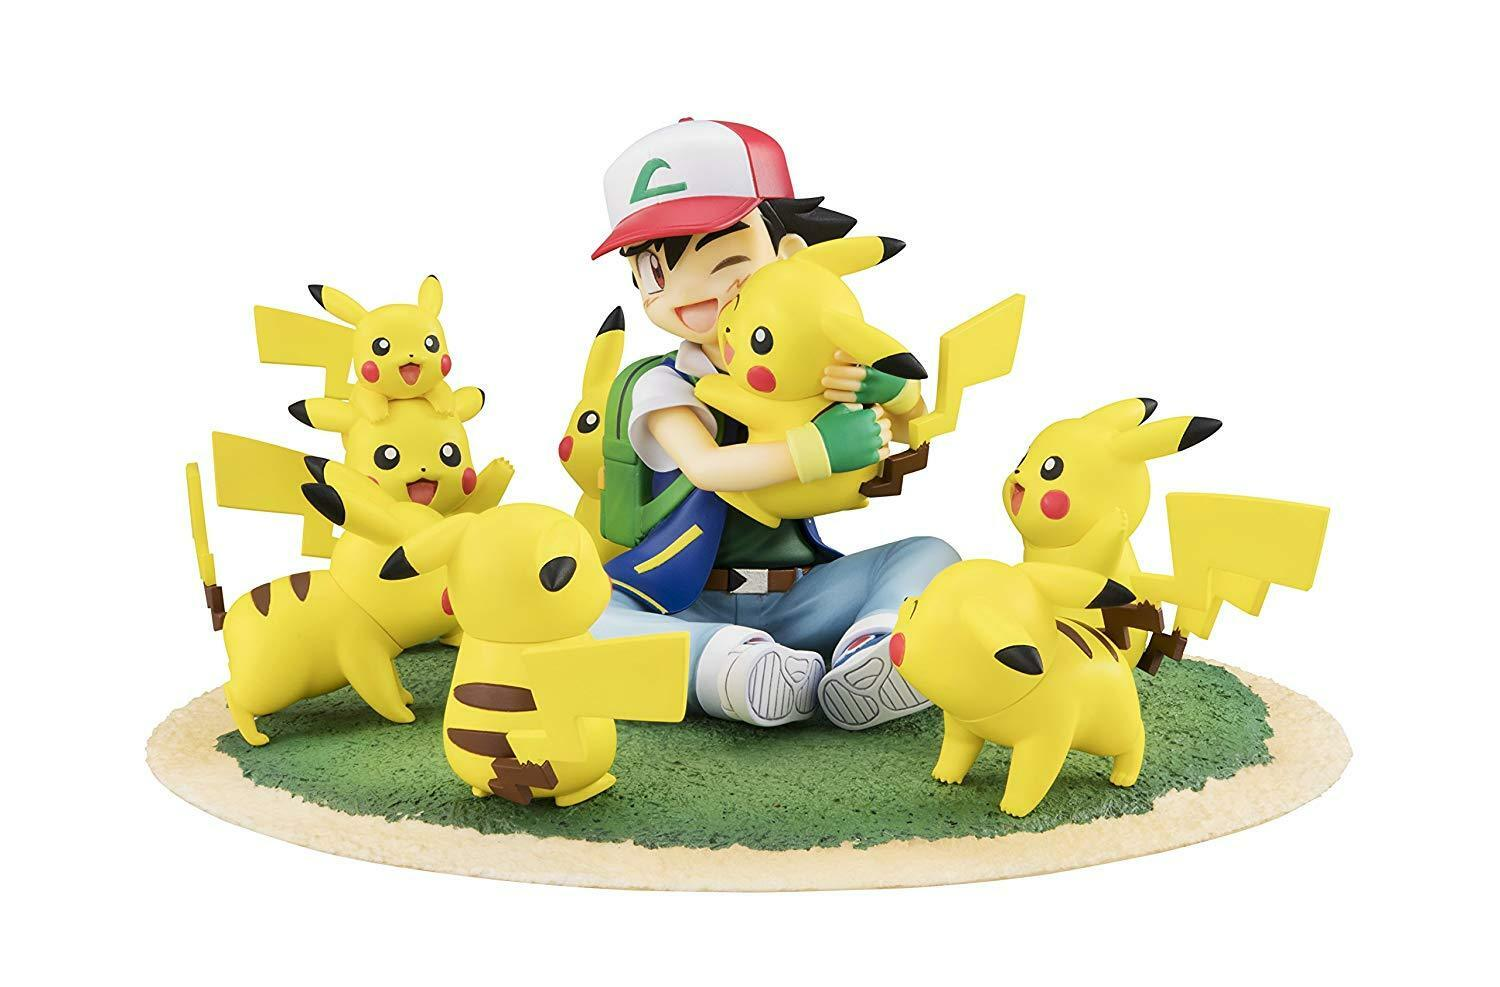 Pokemon Ash & Pikach G.E.M. Series 4.7 4.7 4.7  PVC Painted Toy Figure Anime Collectible e294c1